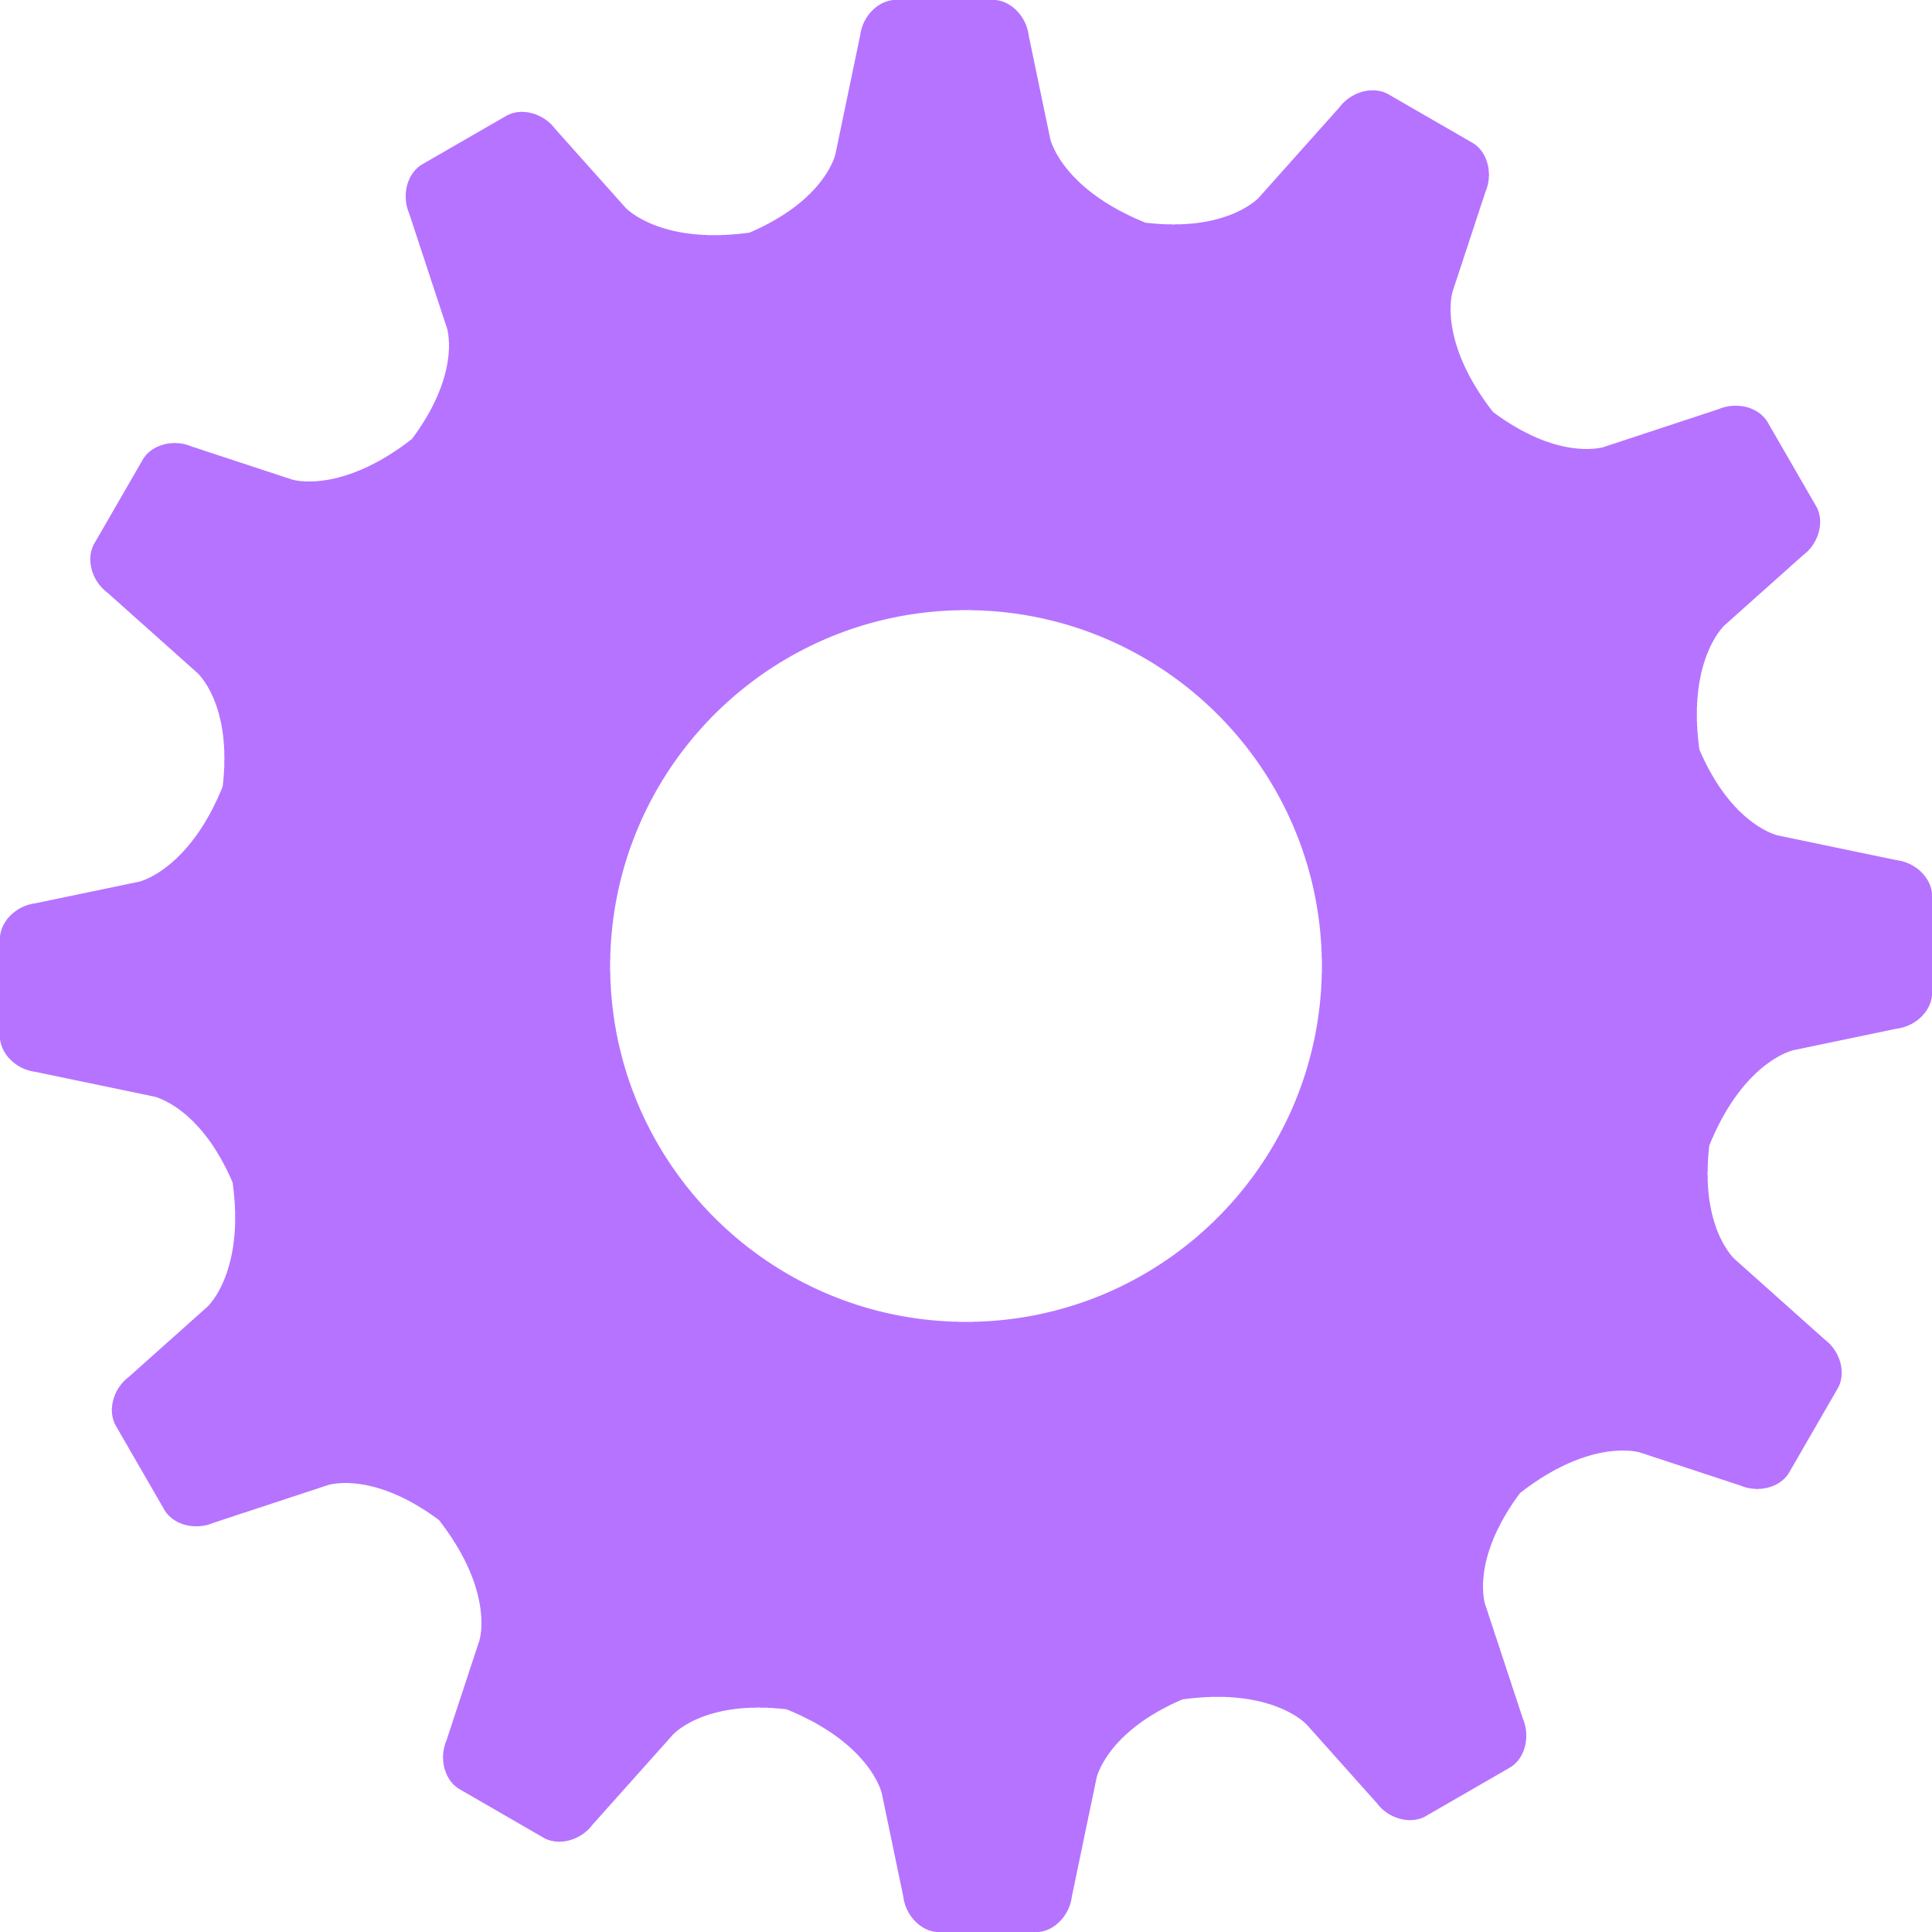 Transparent Gear PNG Clip-art